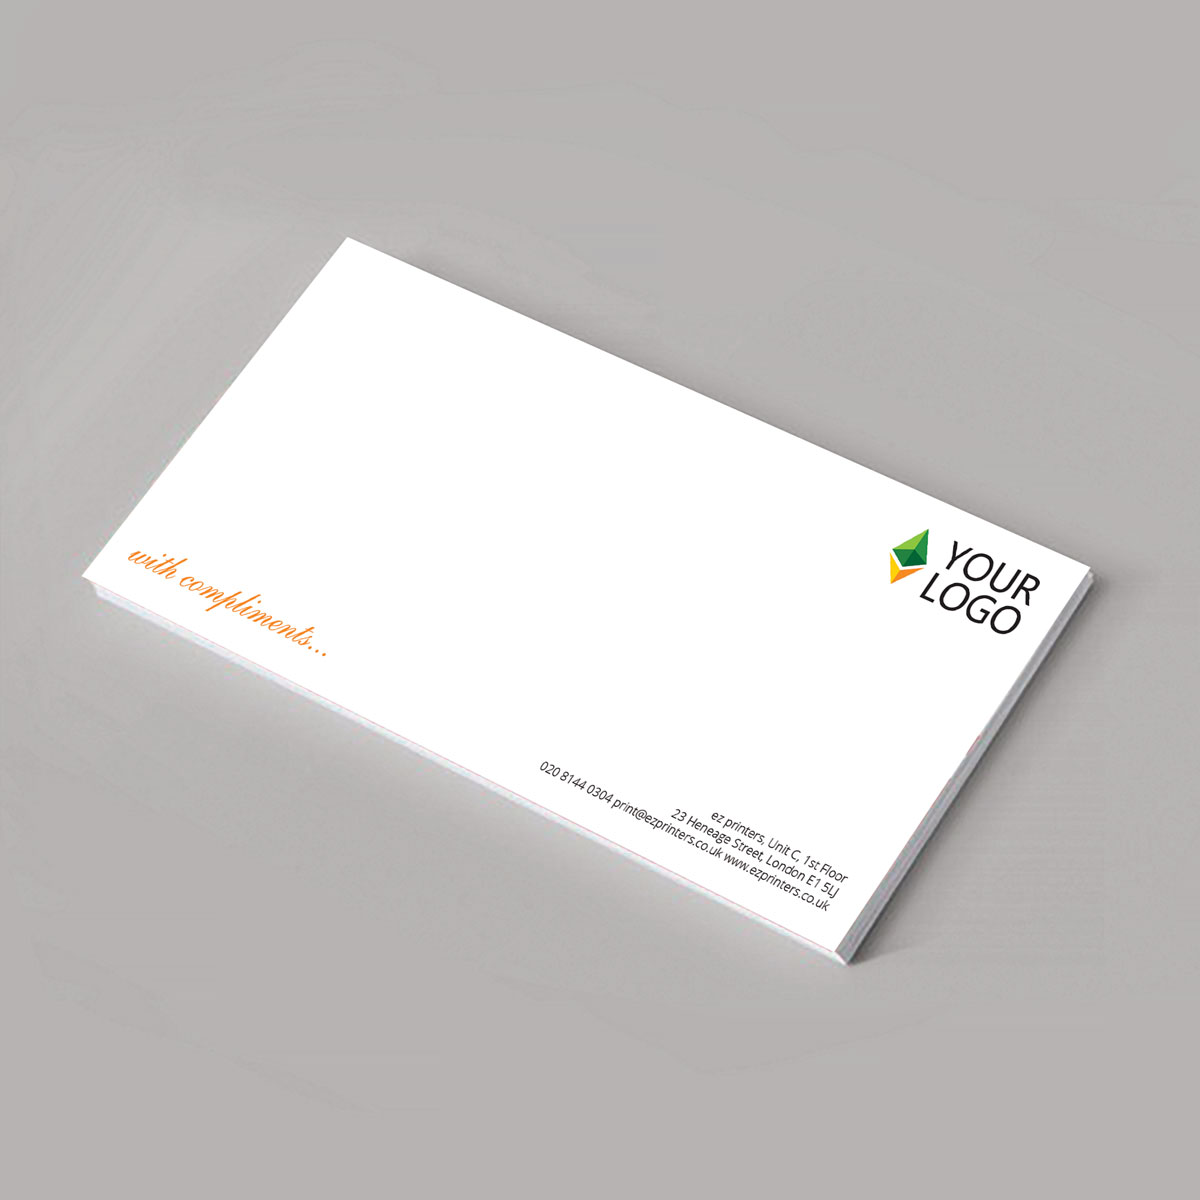 instant high quality compliment slips trade printer london ec3 near me